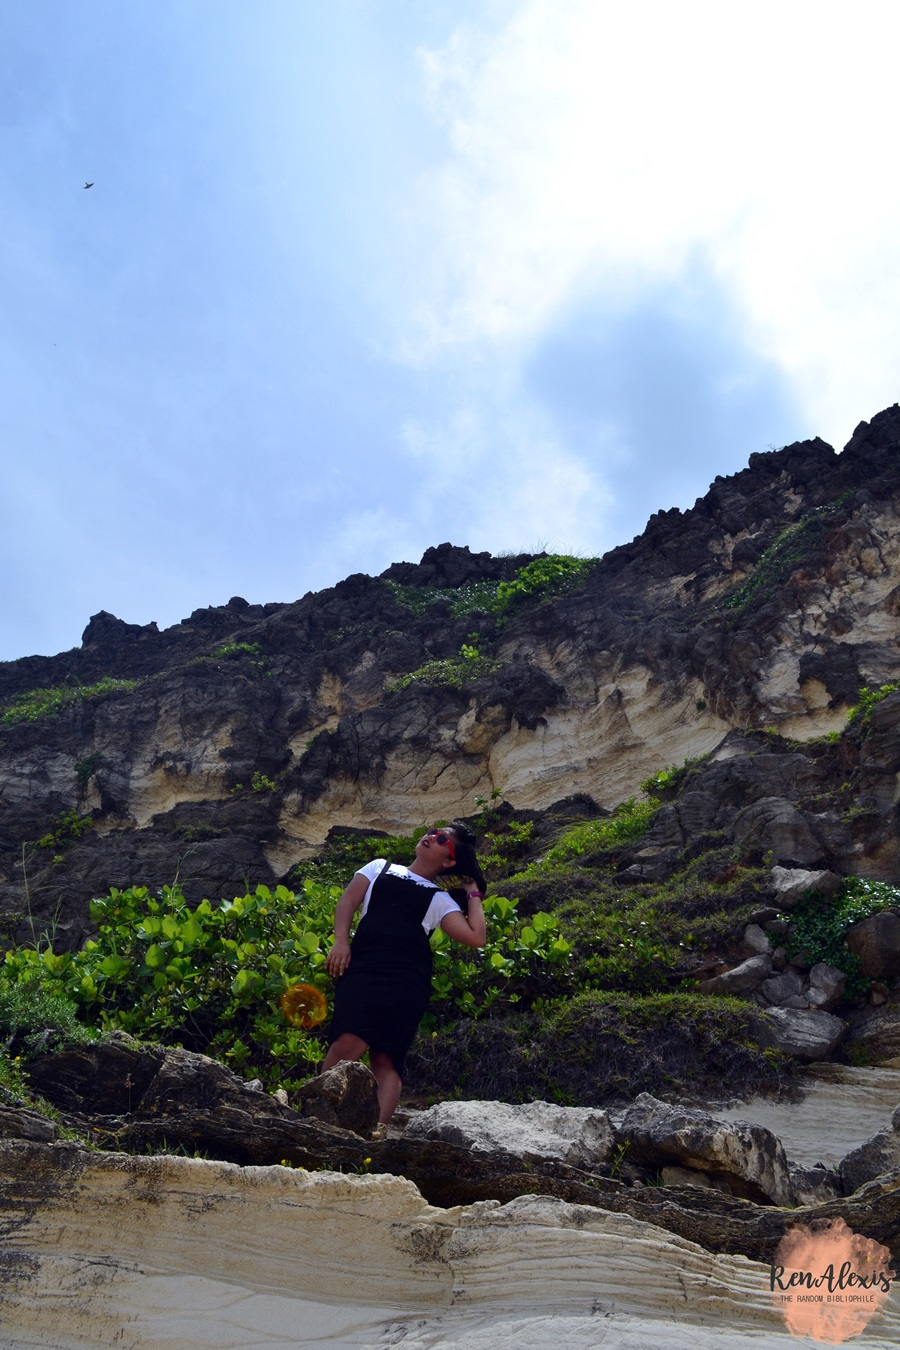 The Kapurpurawan Rock Formation